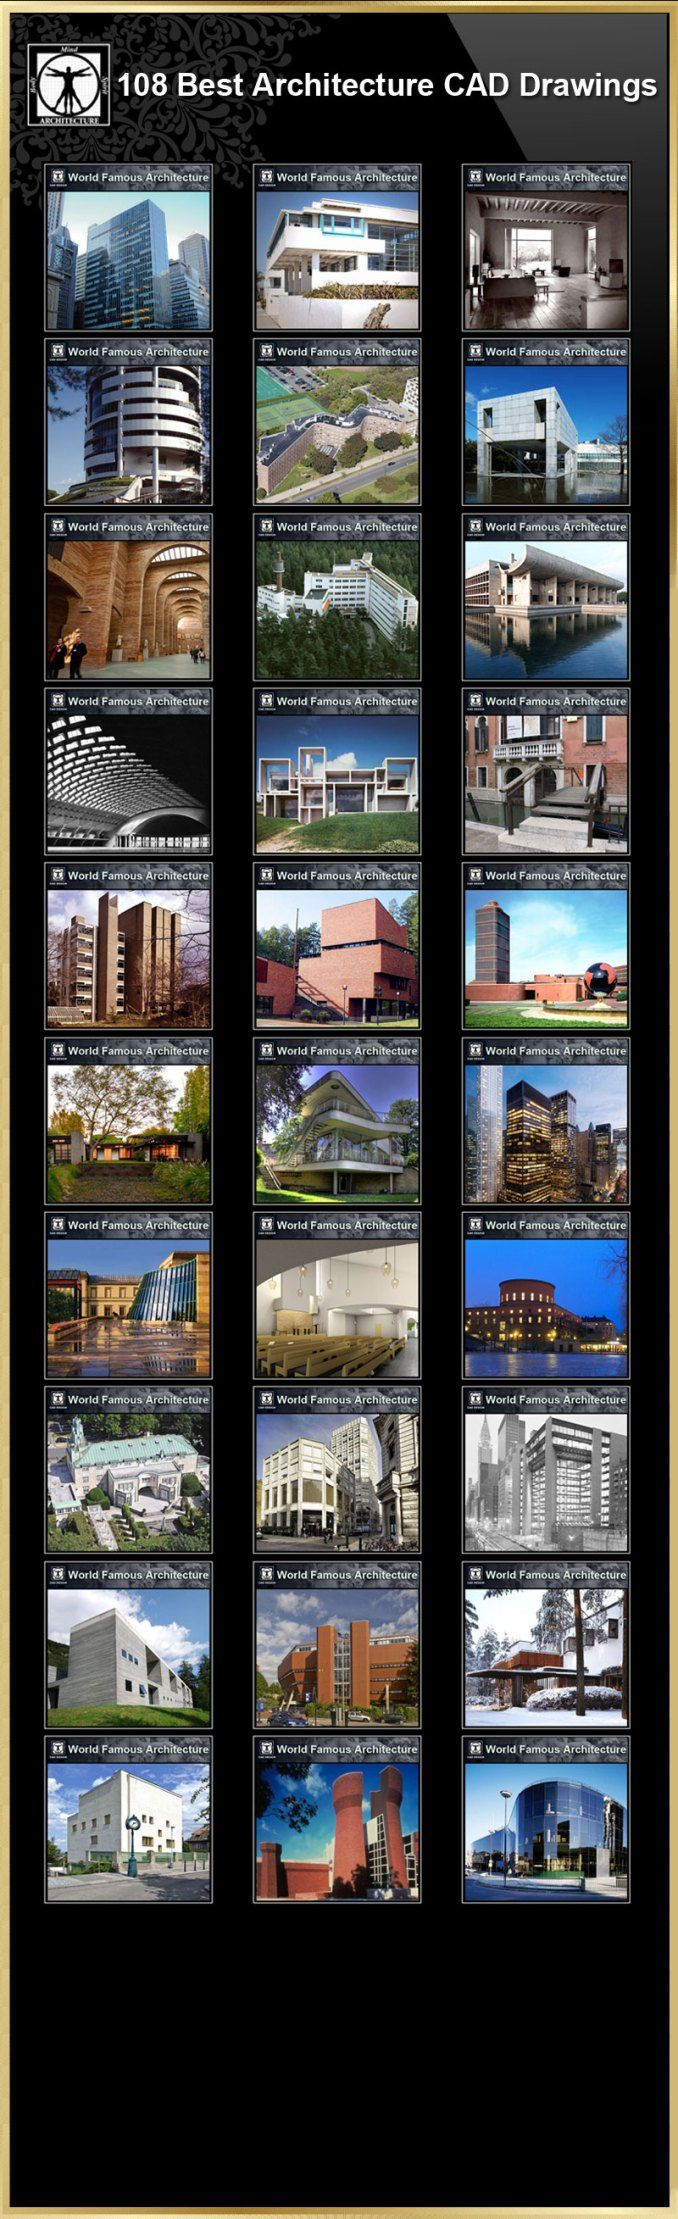 108 Best Architecture CAD DrawingsBest Collections